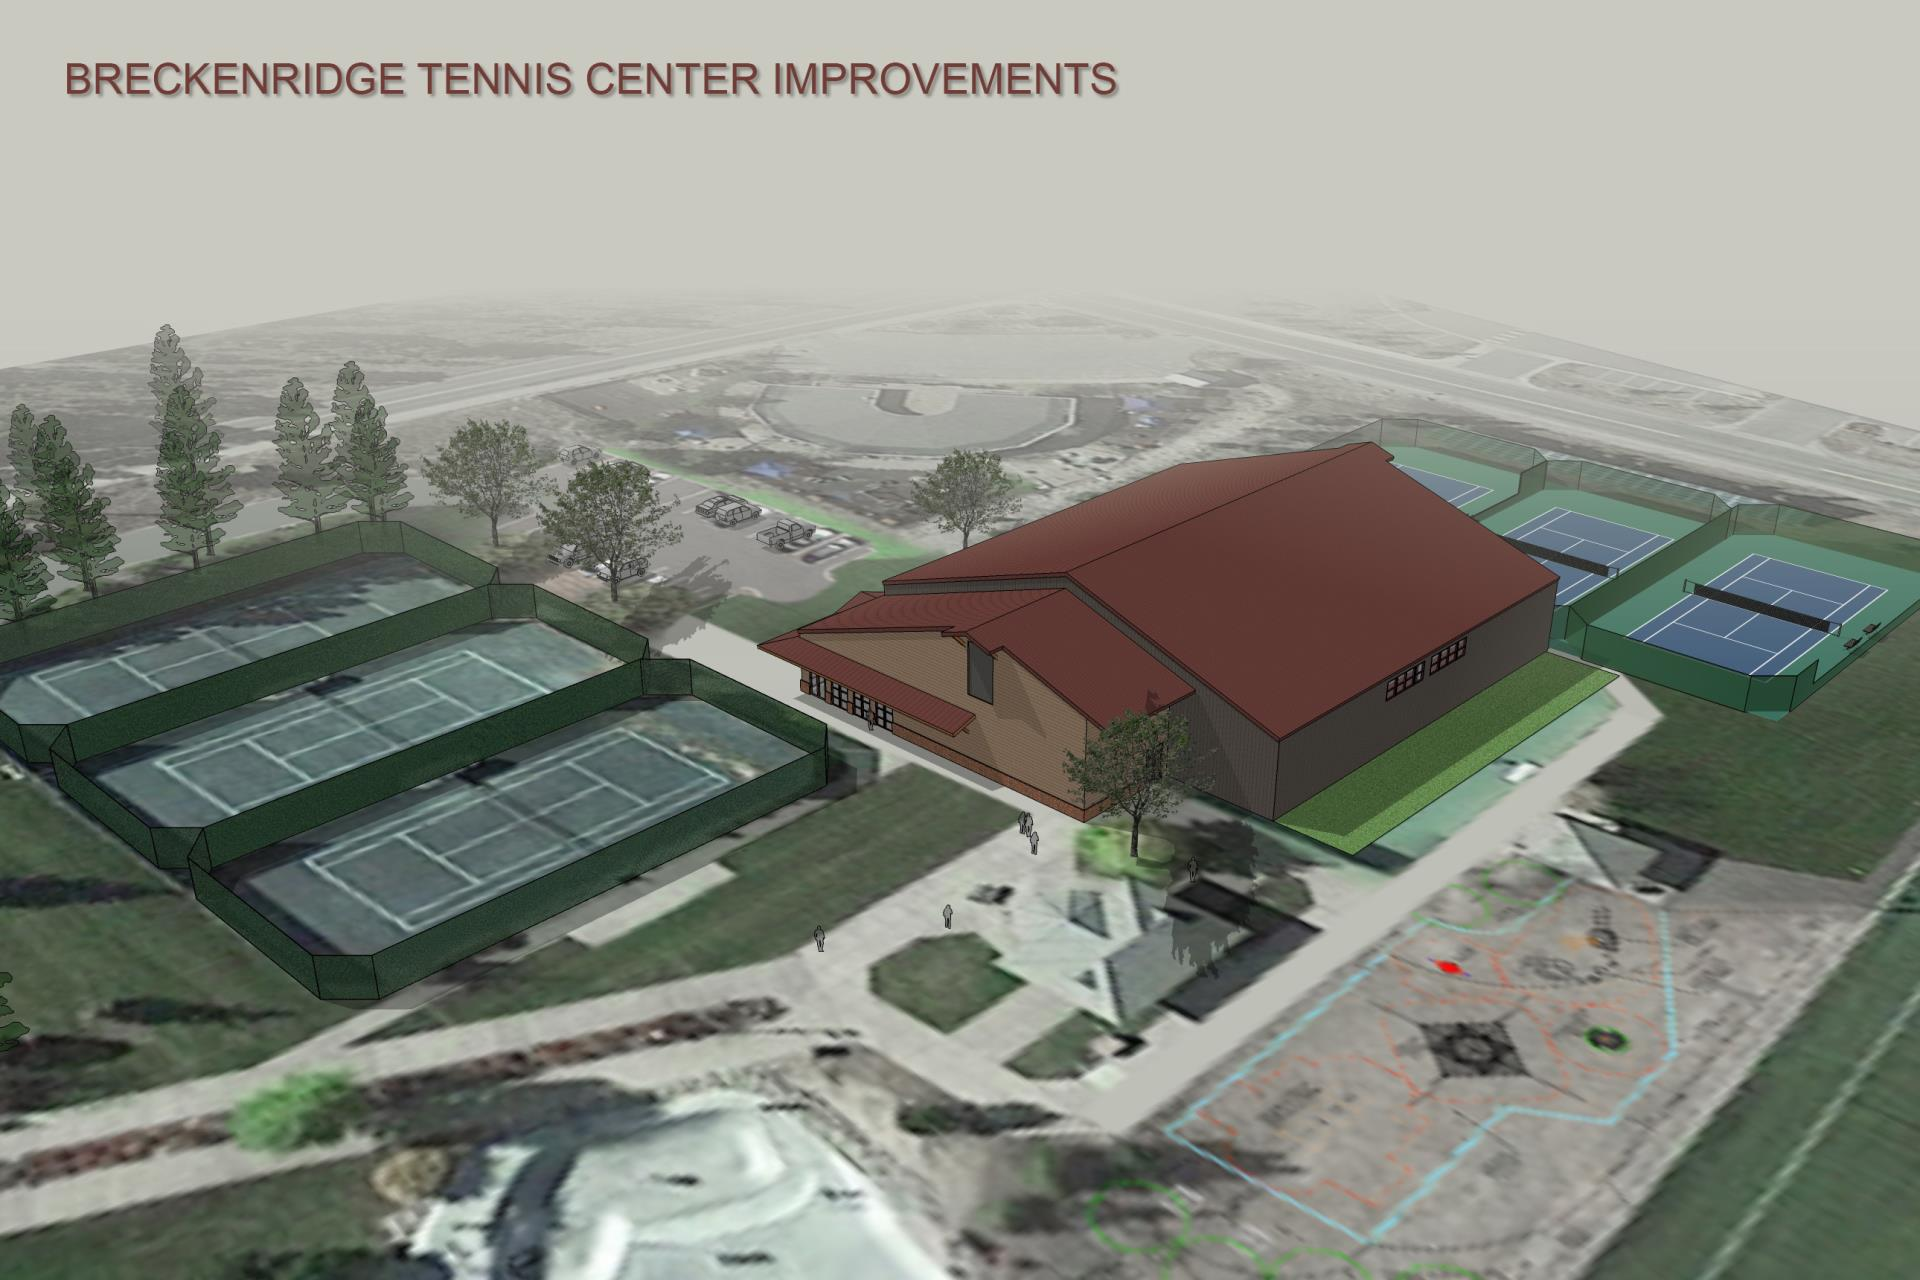 Breckenridge Tennis Center